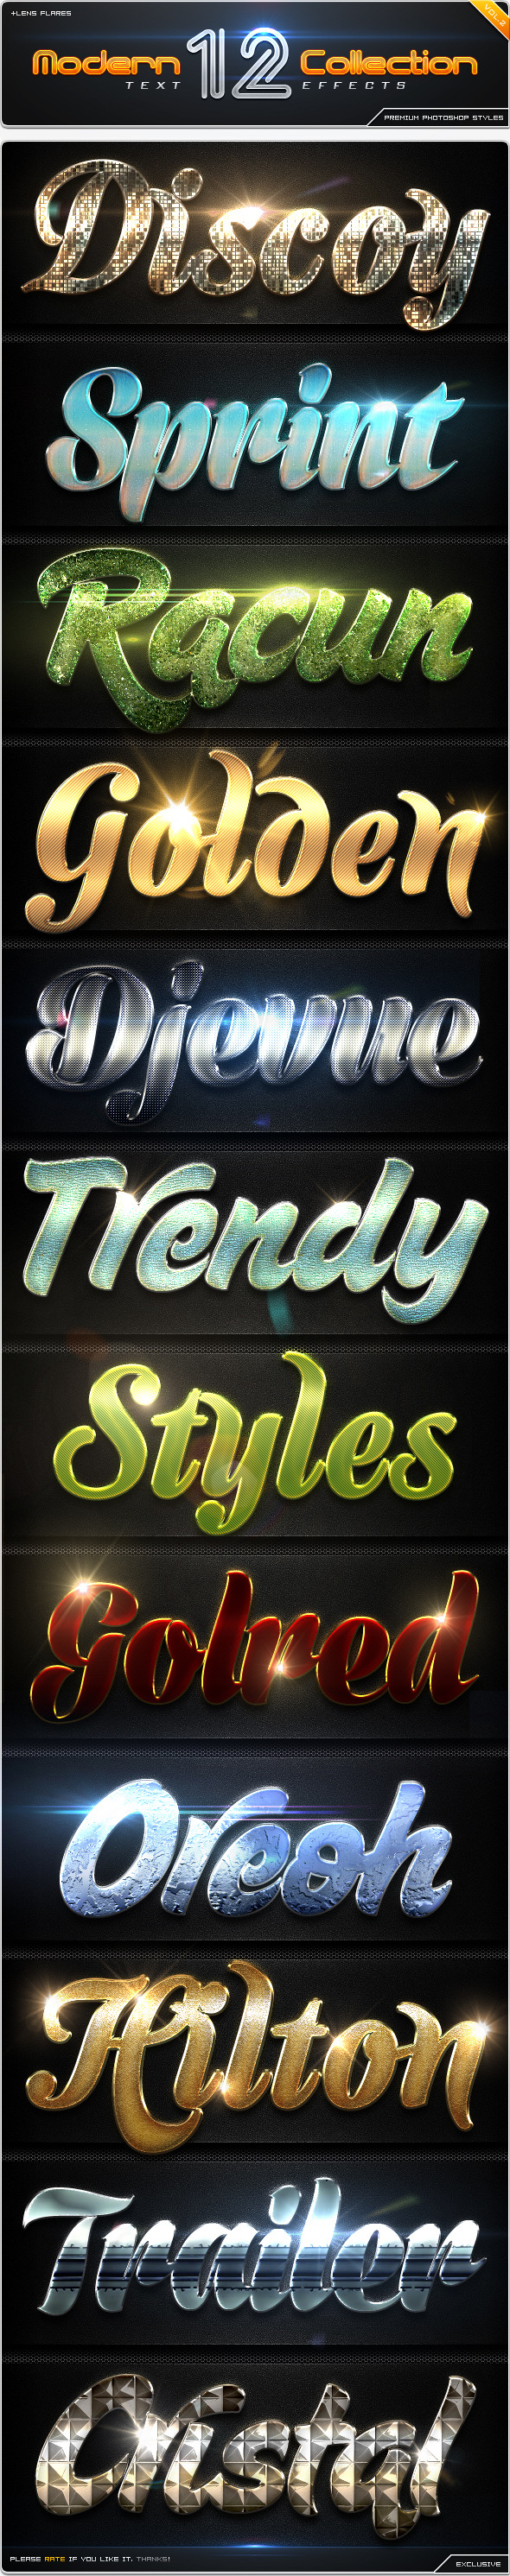 GraphicRiver 12 Modern Collection Text Effect Styles Vol.2 8816858